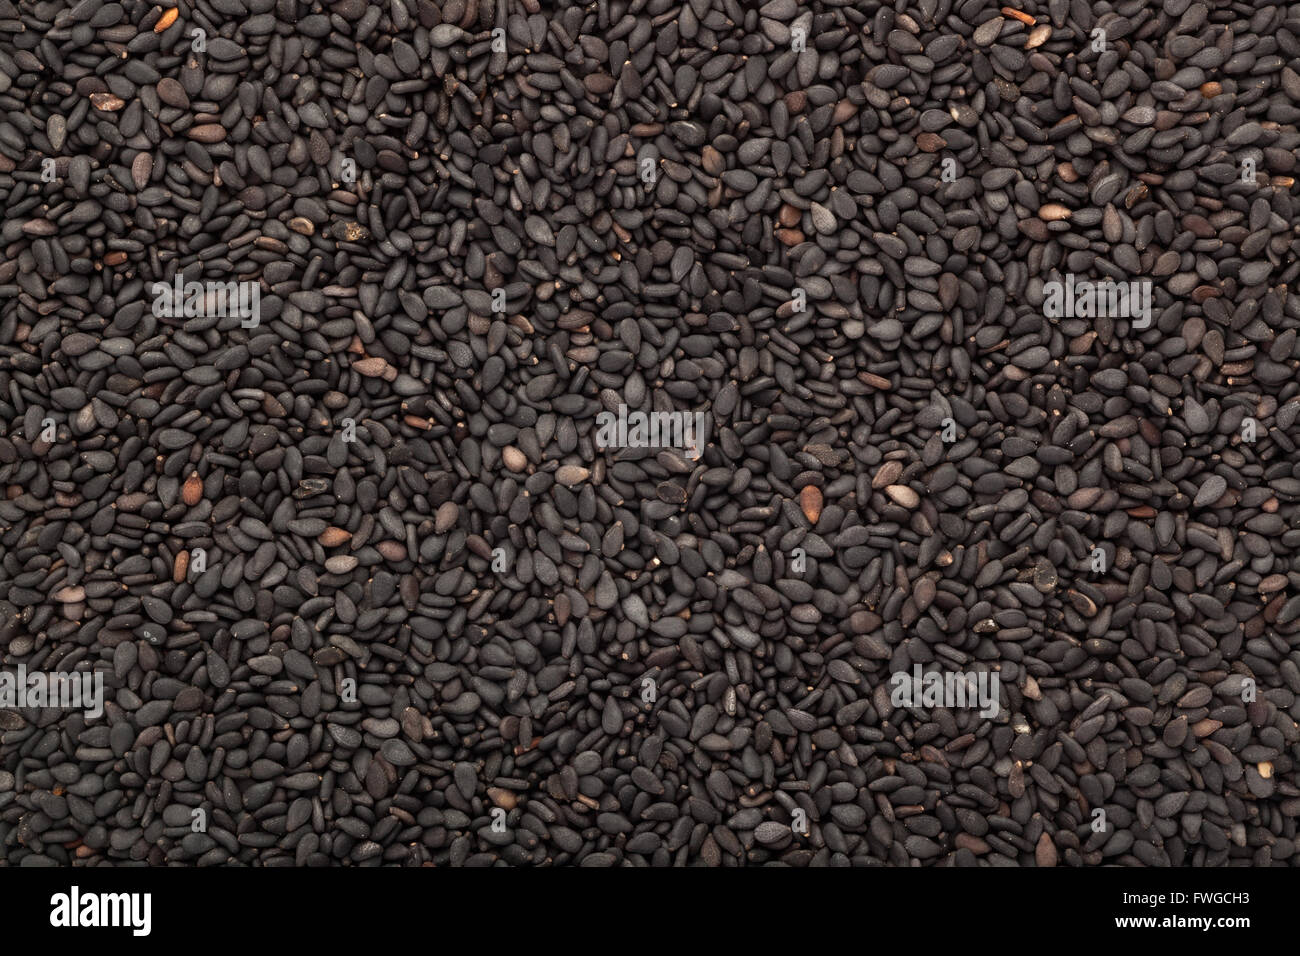 Closeup of lots of black sesame seeds - Stock Image